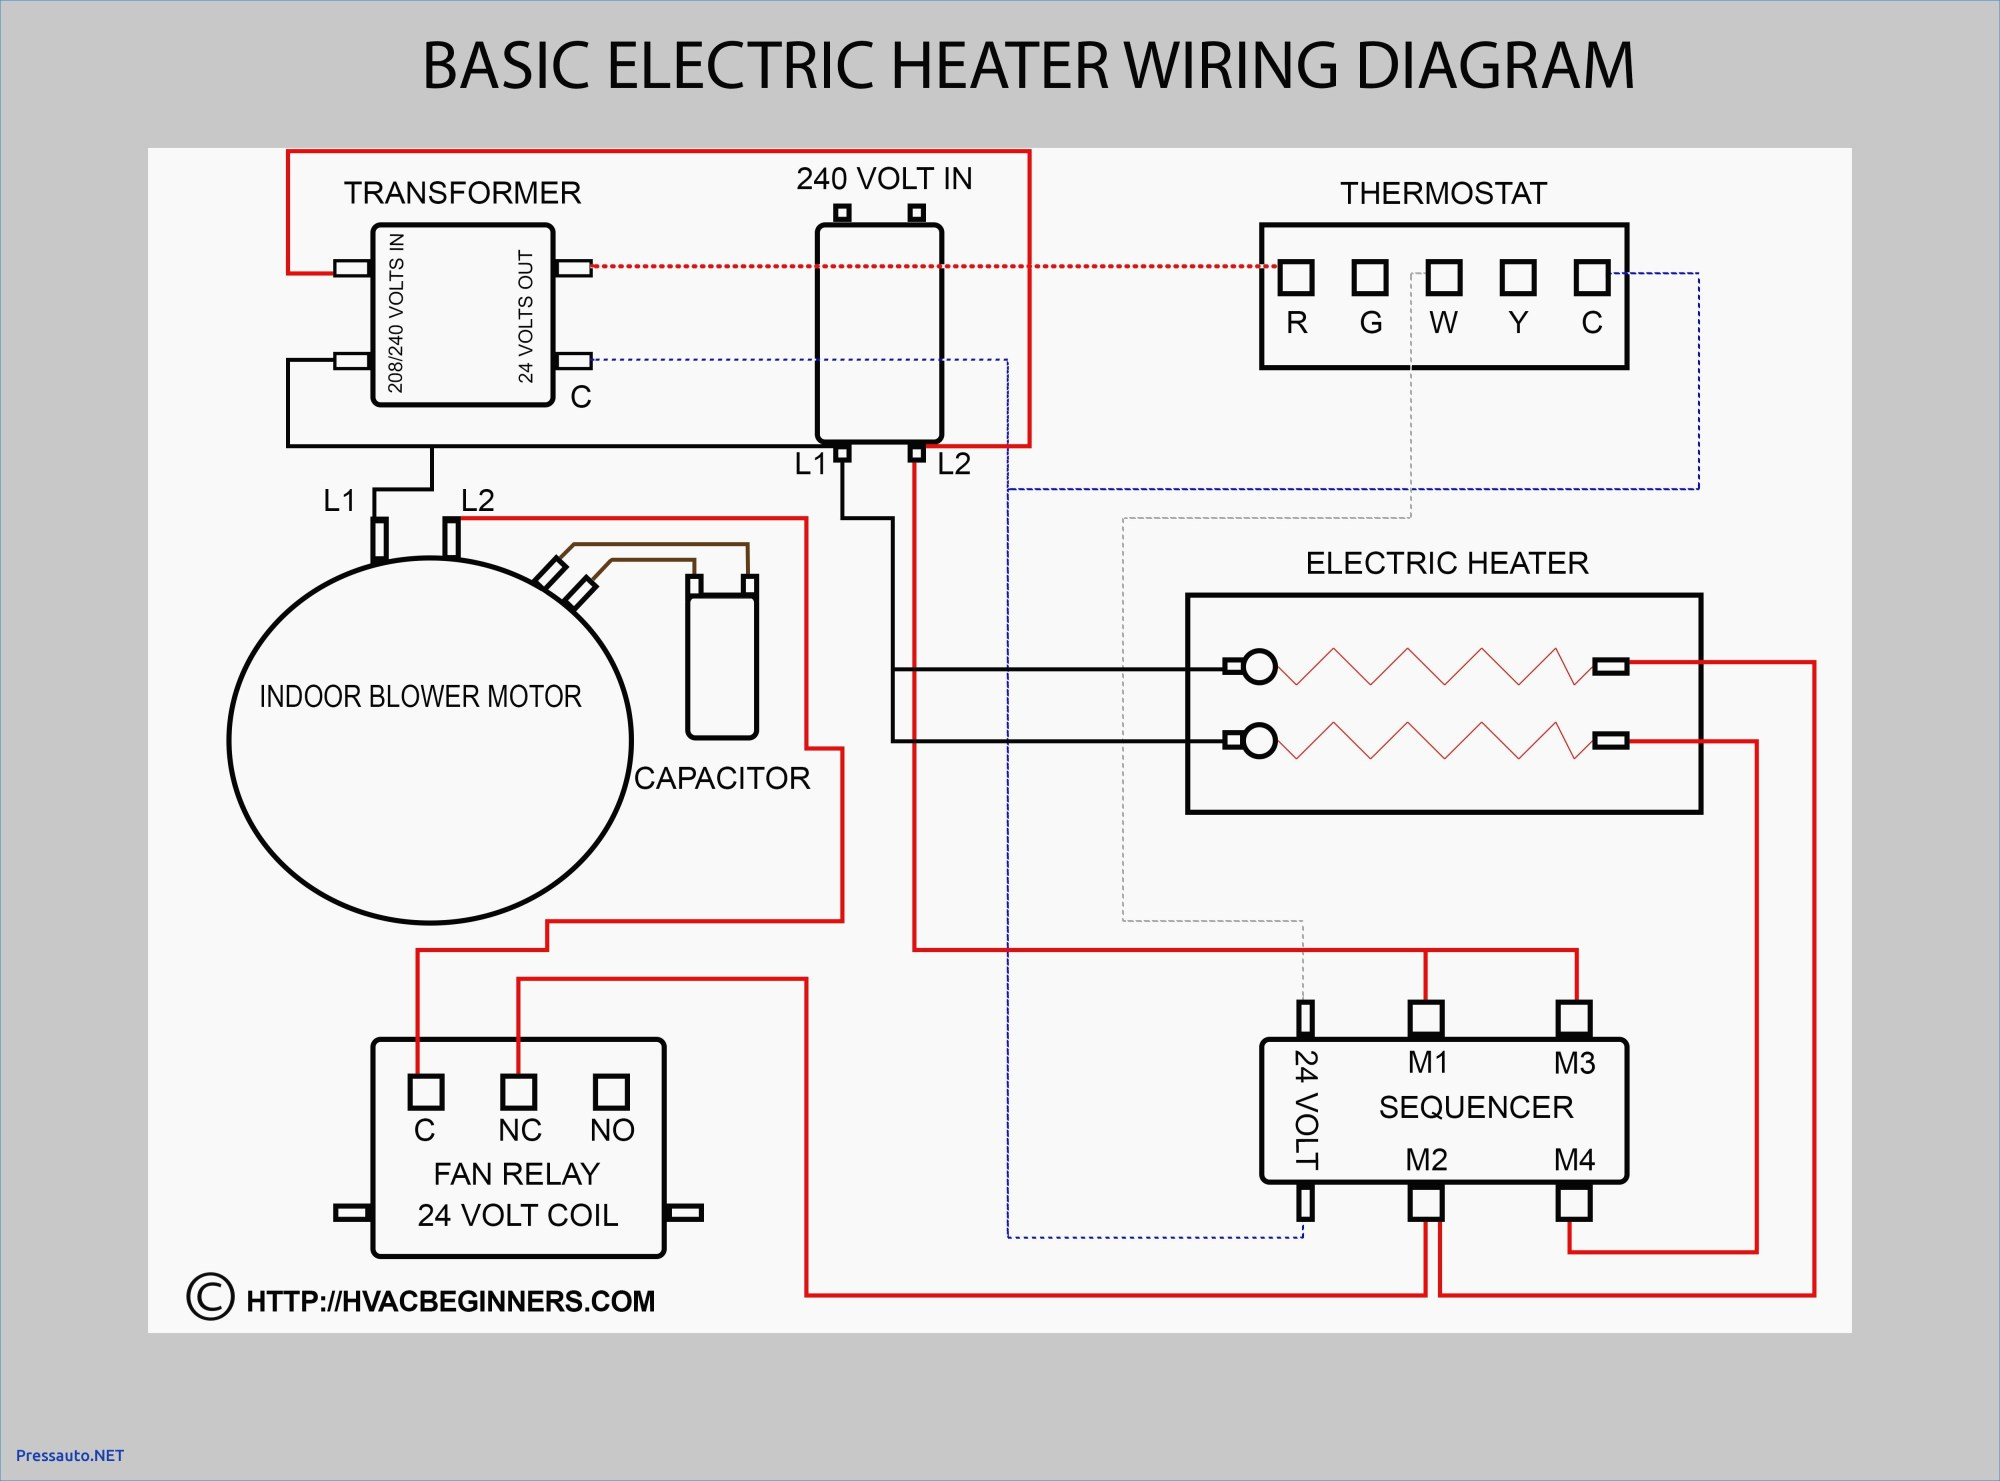 hight resolution of home heat wiring diagram wiring diagrams hendershot wiring diagram